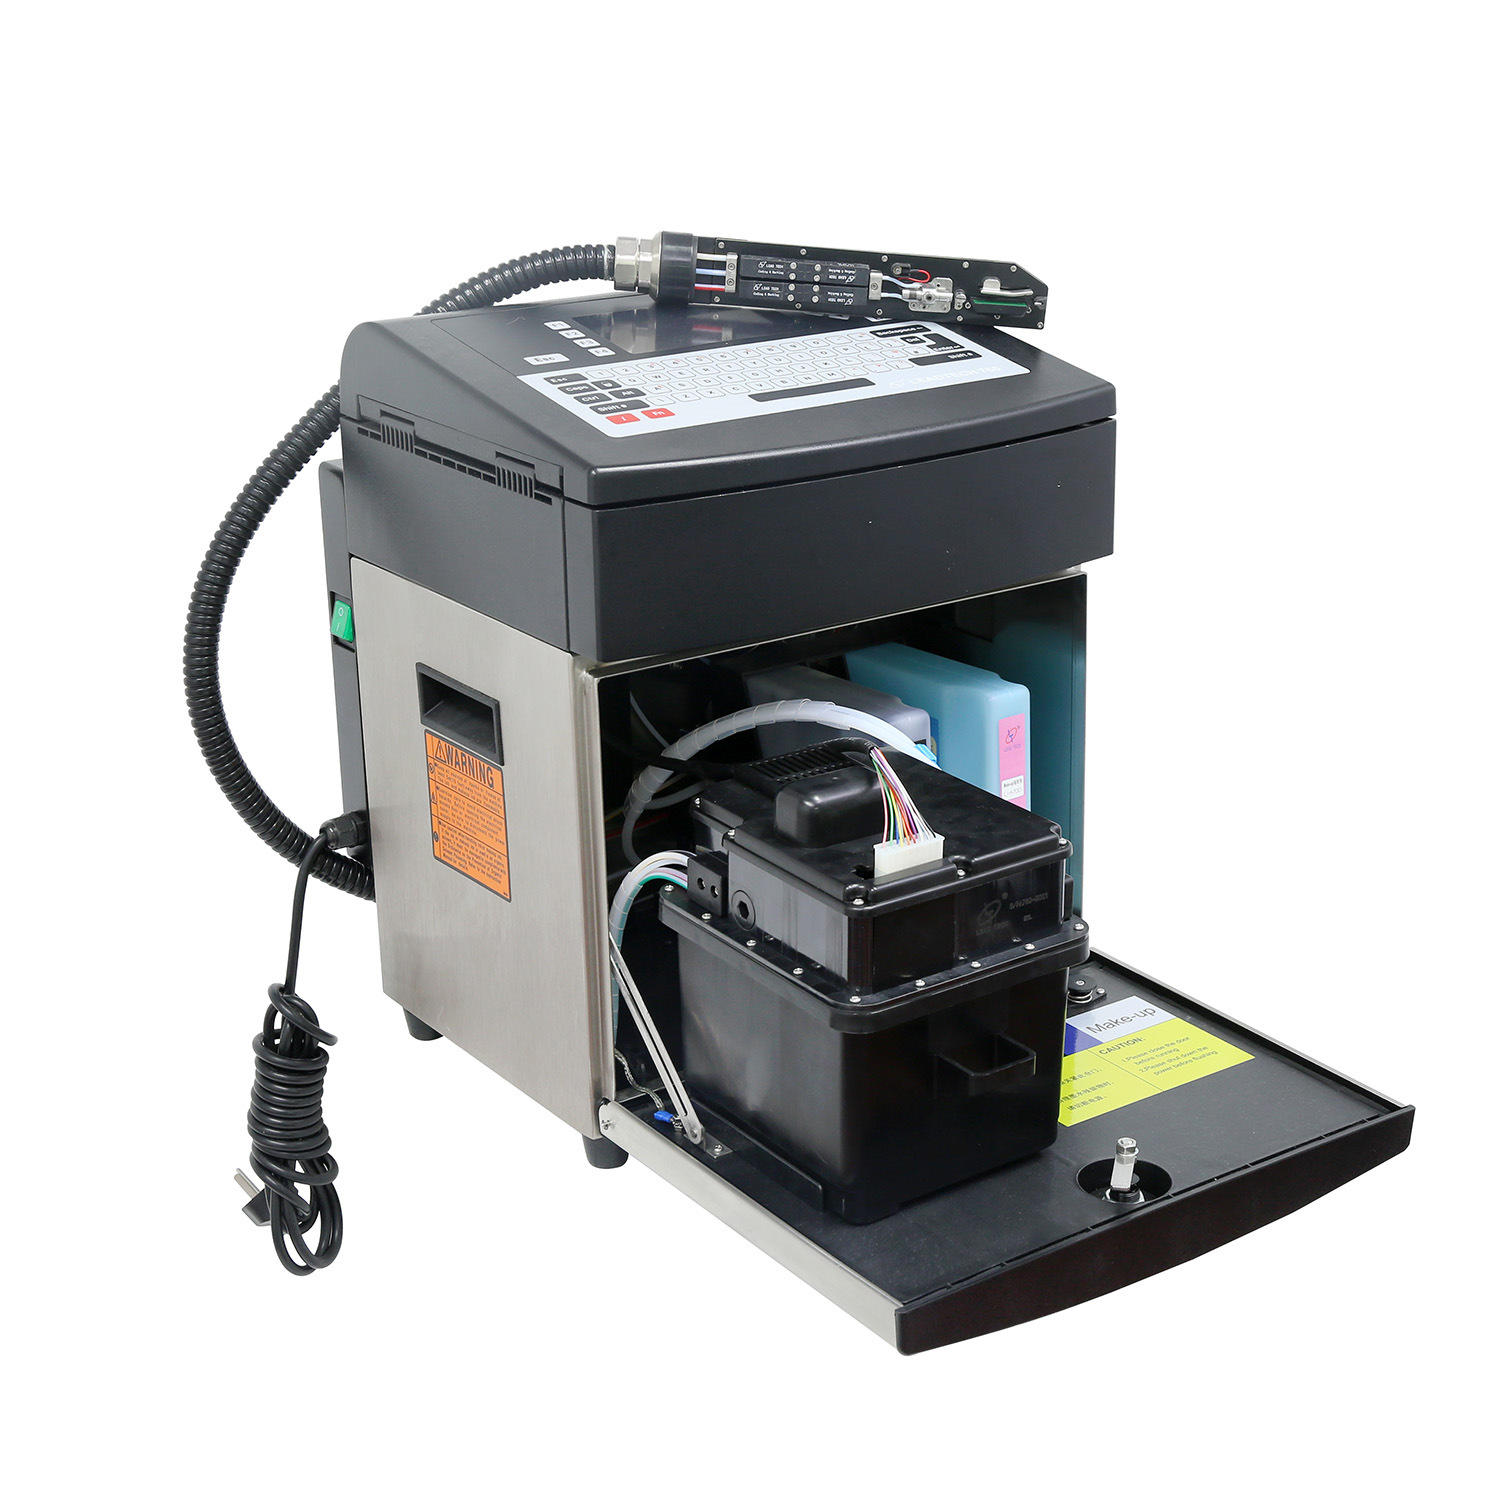 Lead Tech Lt760 Printer Date Printing Machine